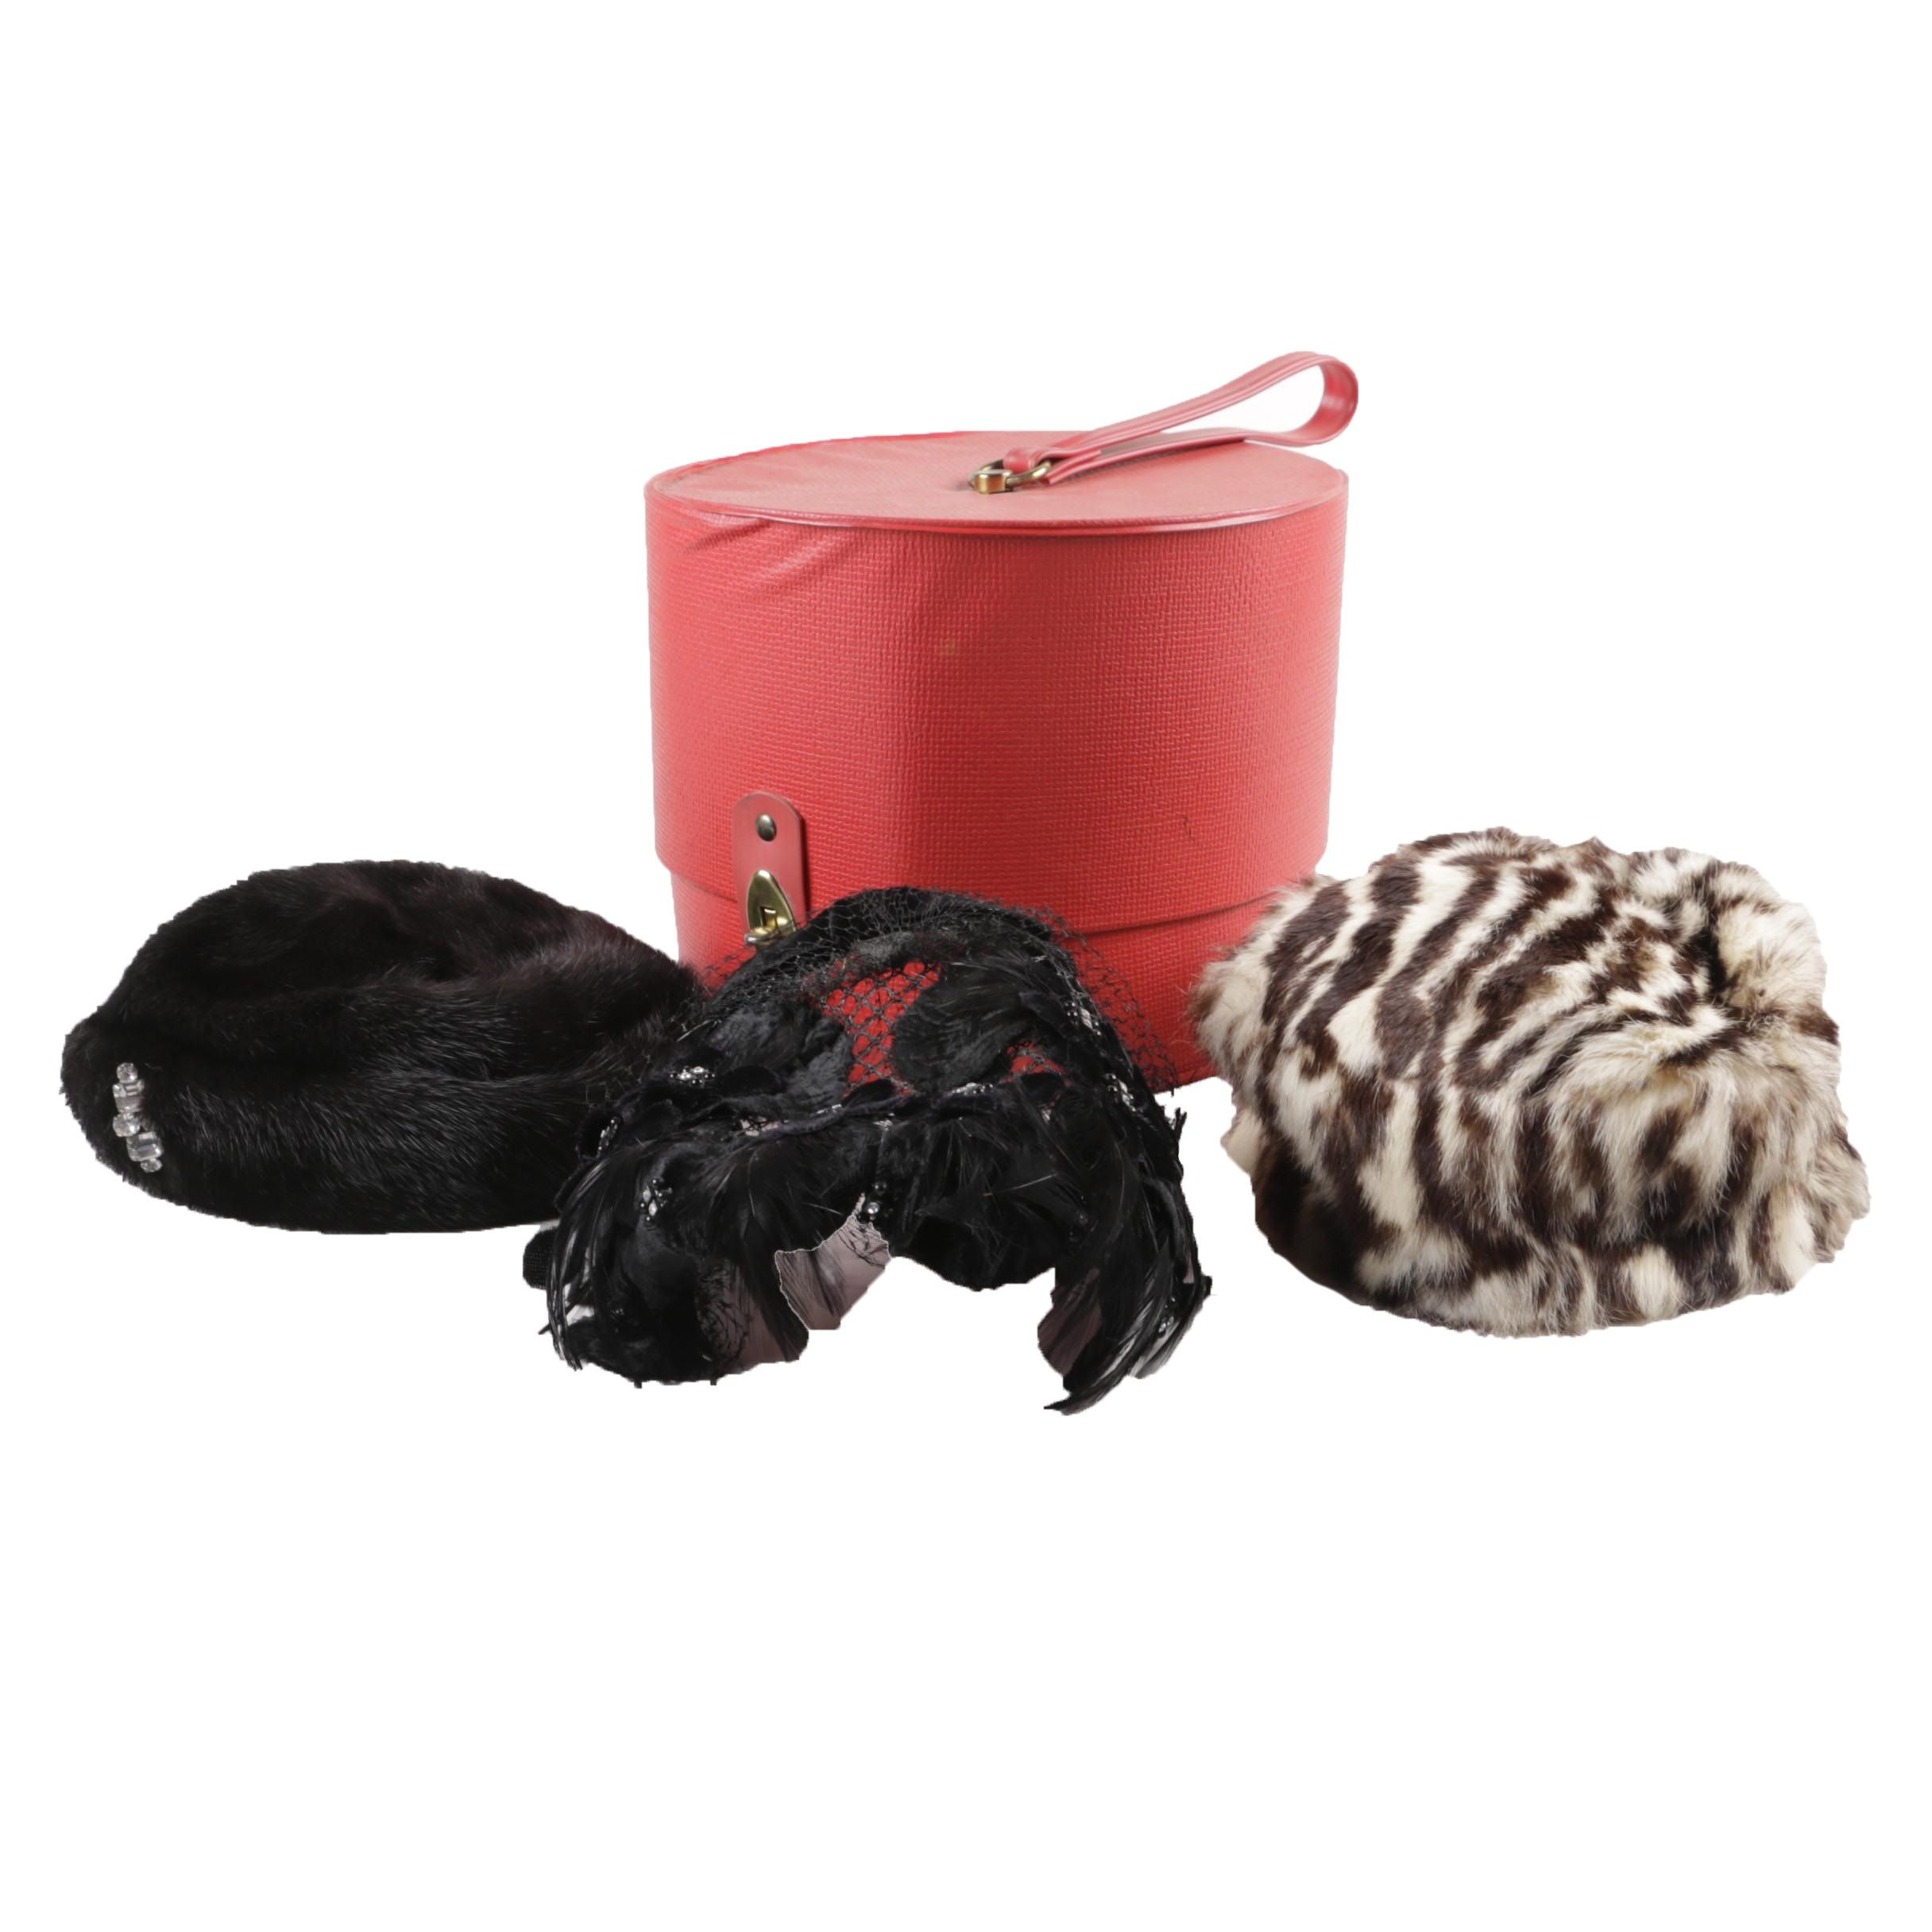 Collection of Women's Vintage Hats including Mink and Rabbit Fur